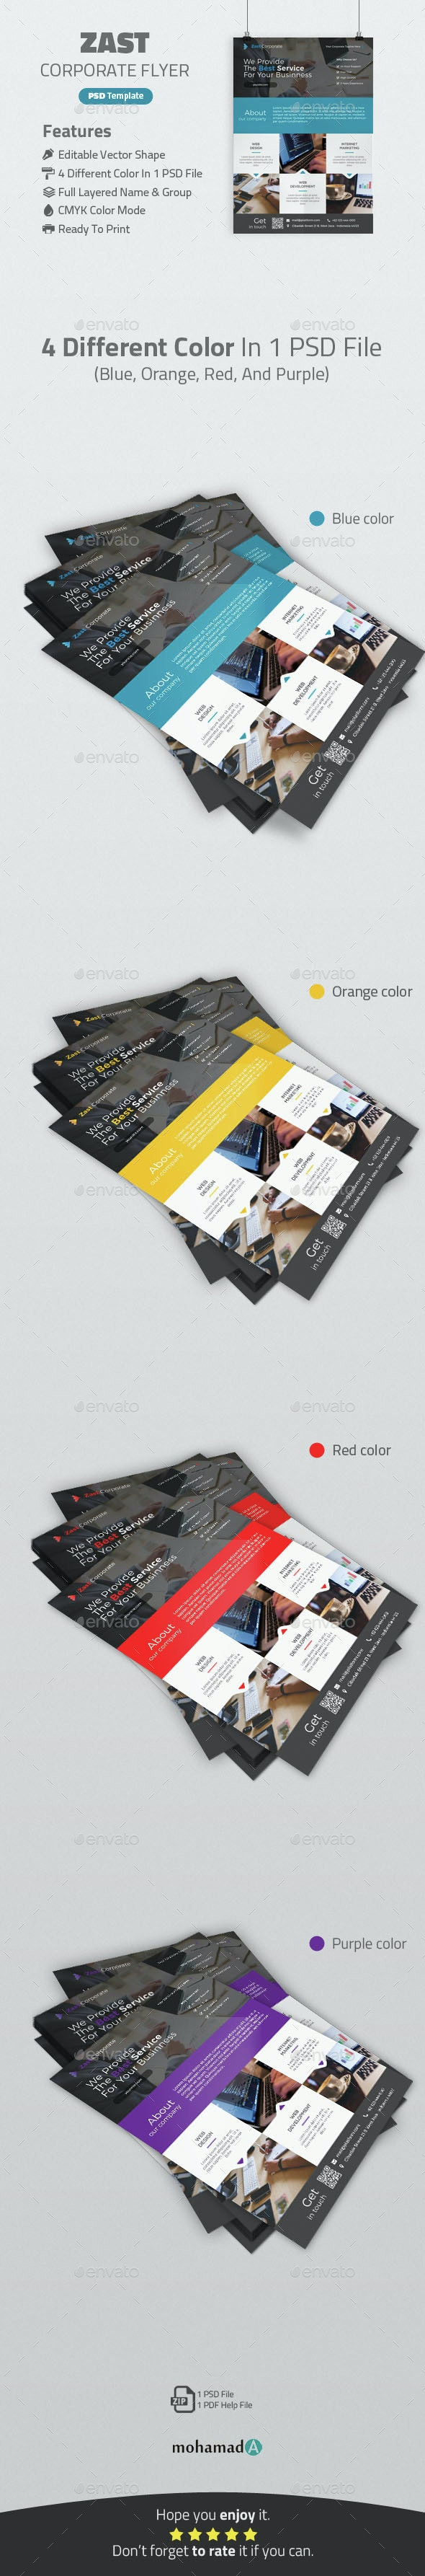 Zast Corporate Flyer - Corporate Flyers